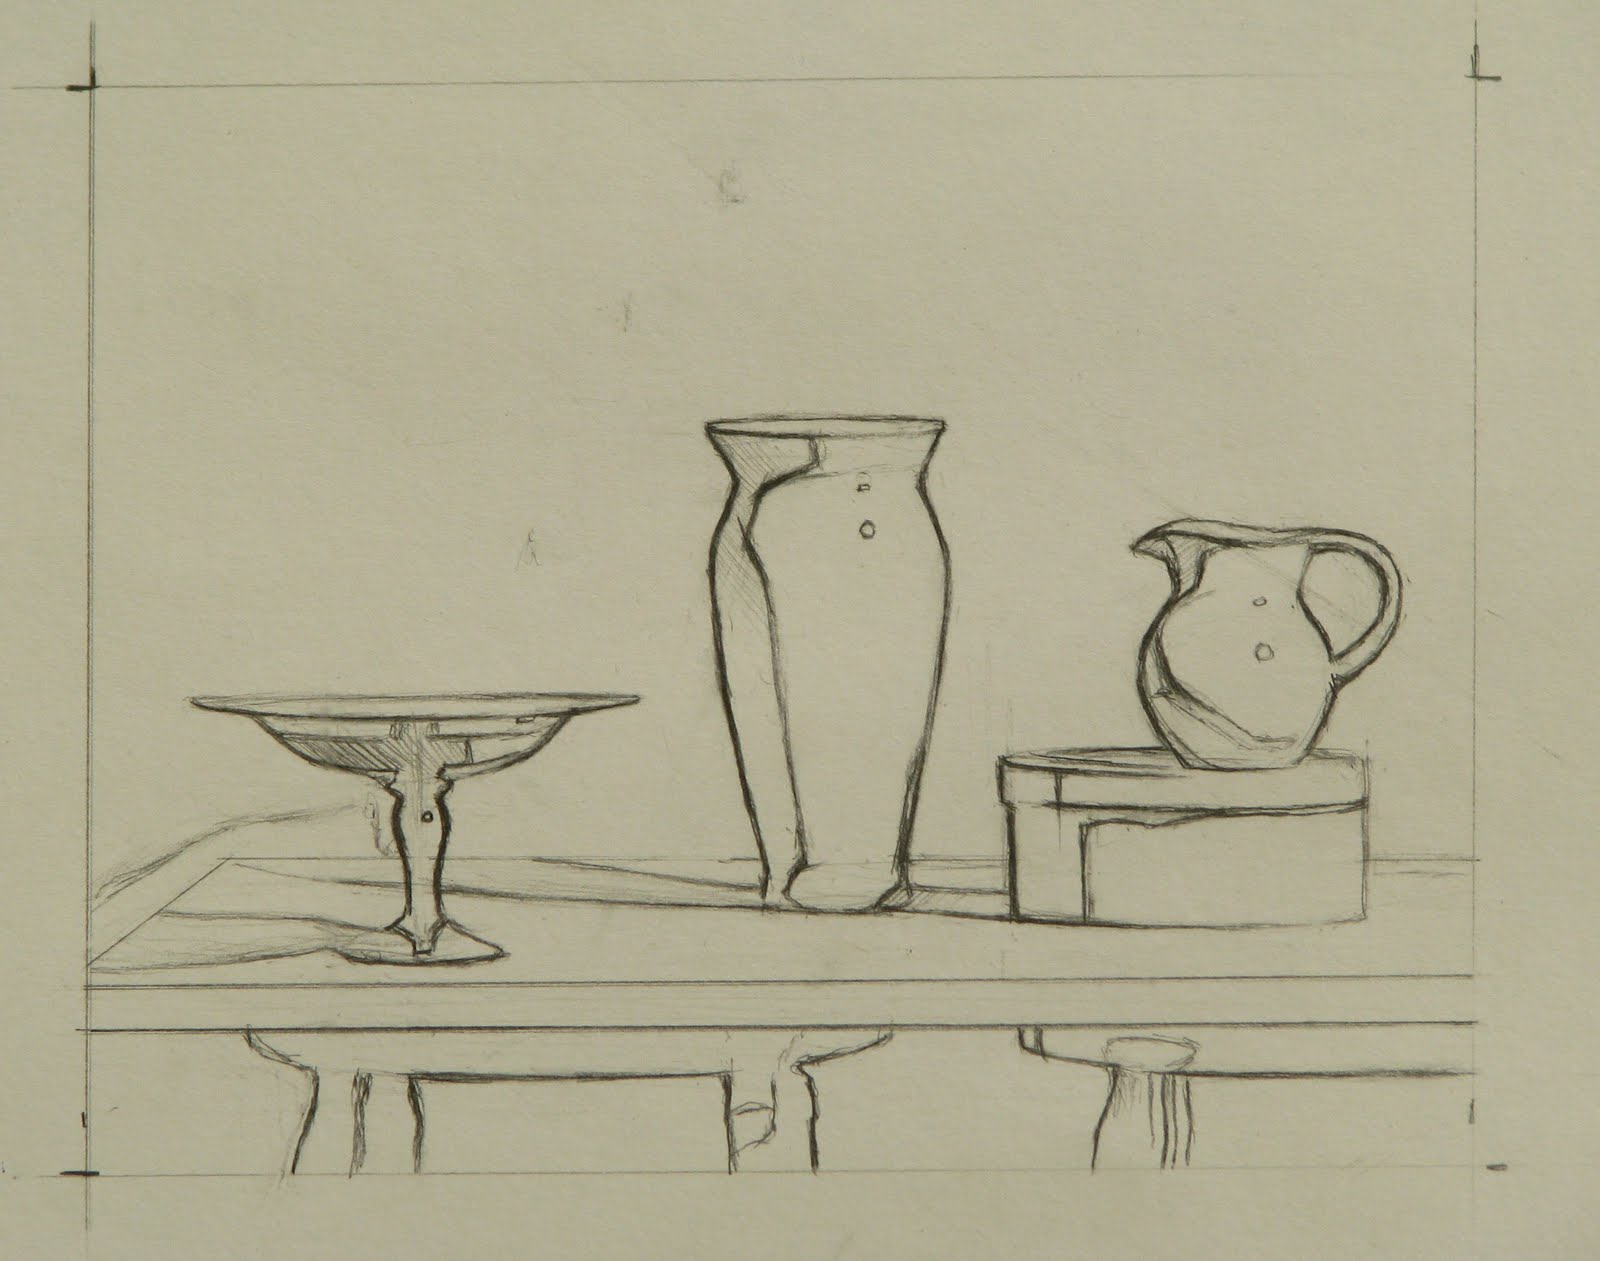 Drawing done for my still life class at laa the still life will have